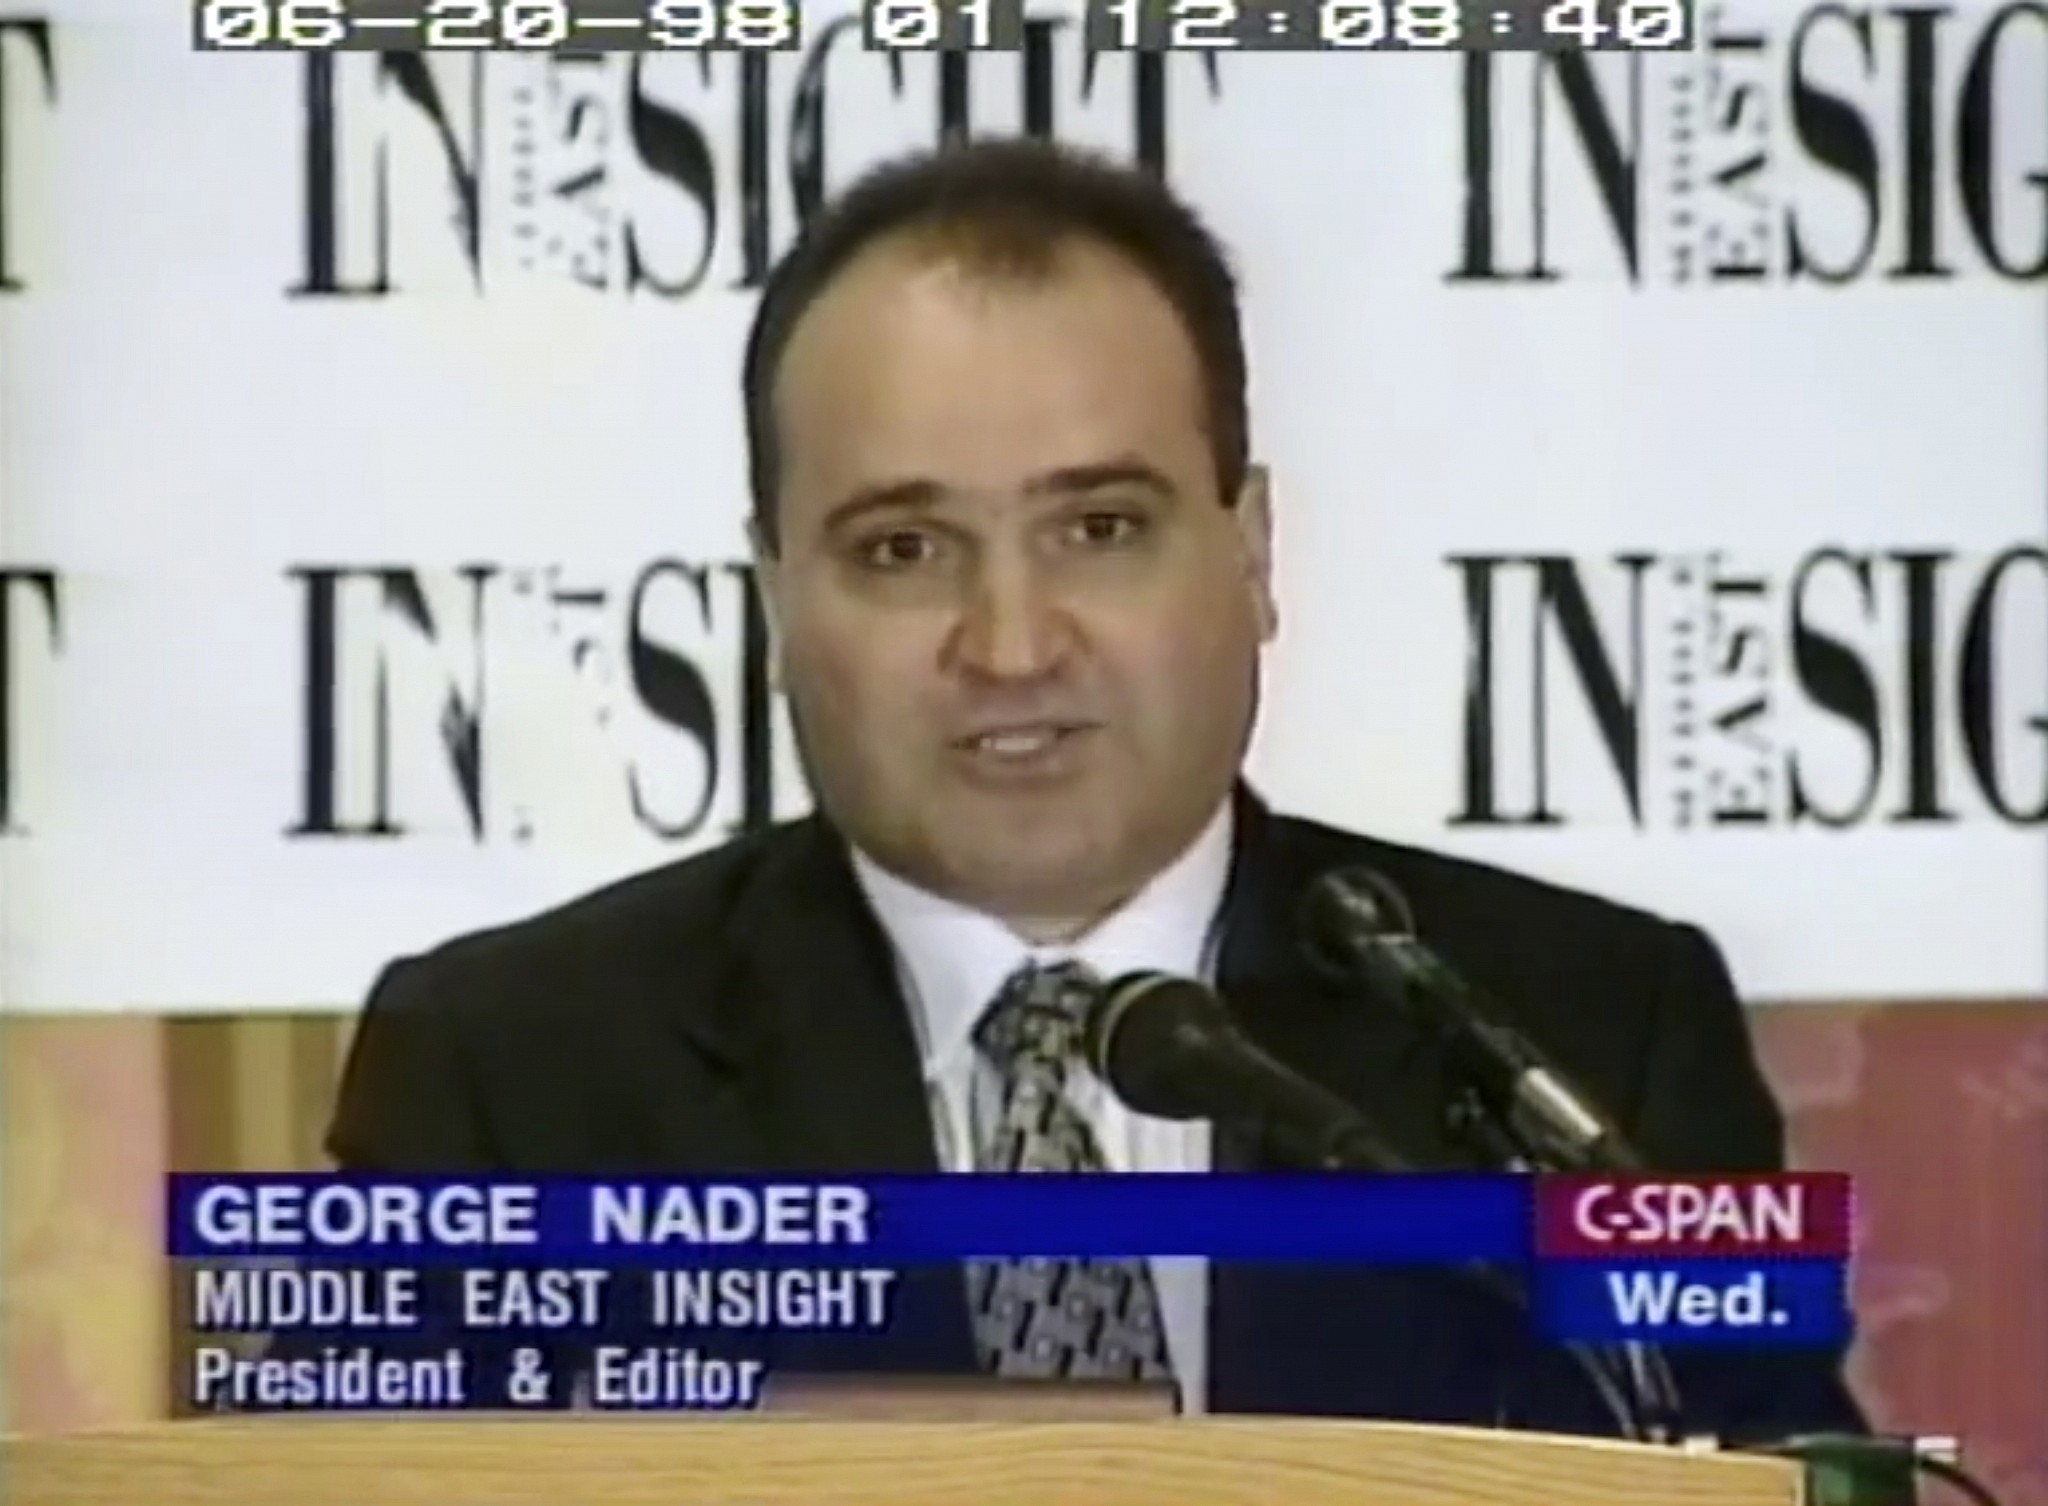 This 1998 frame from video provided by C-SPAN shows George Nader president and editor of Middle East Insight